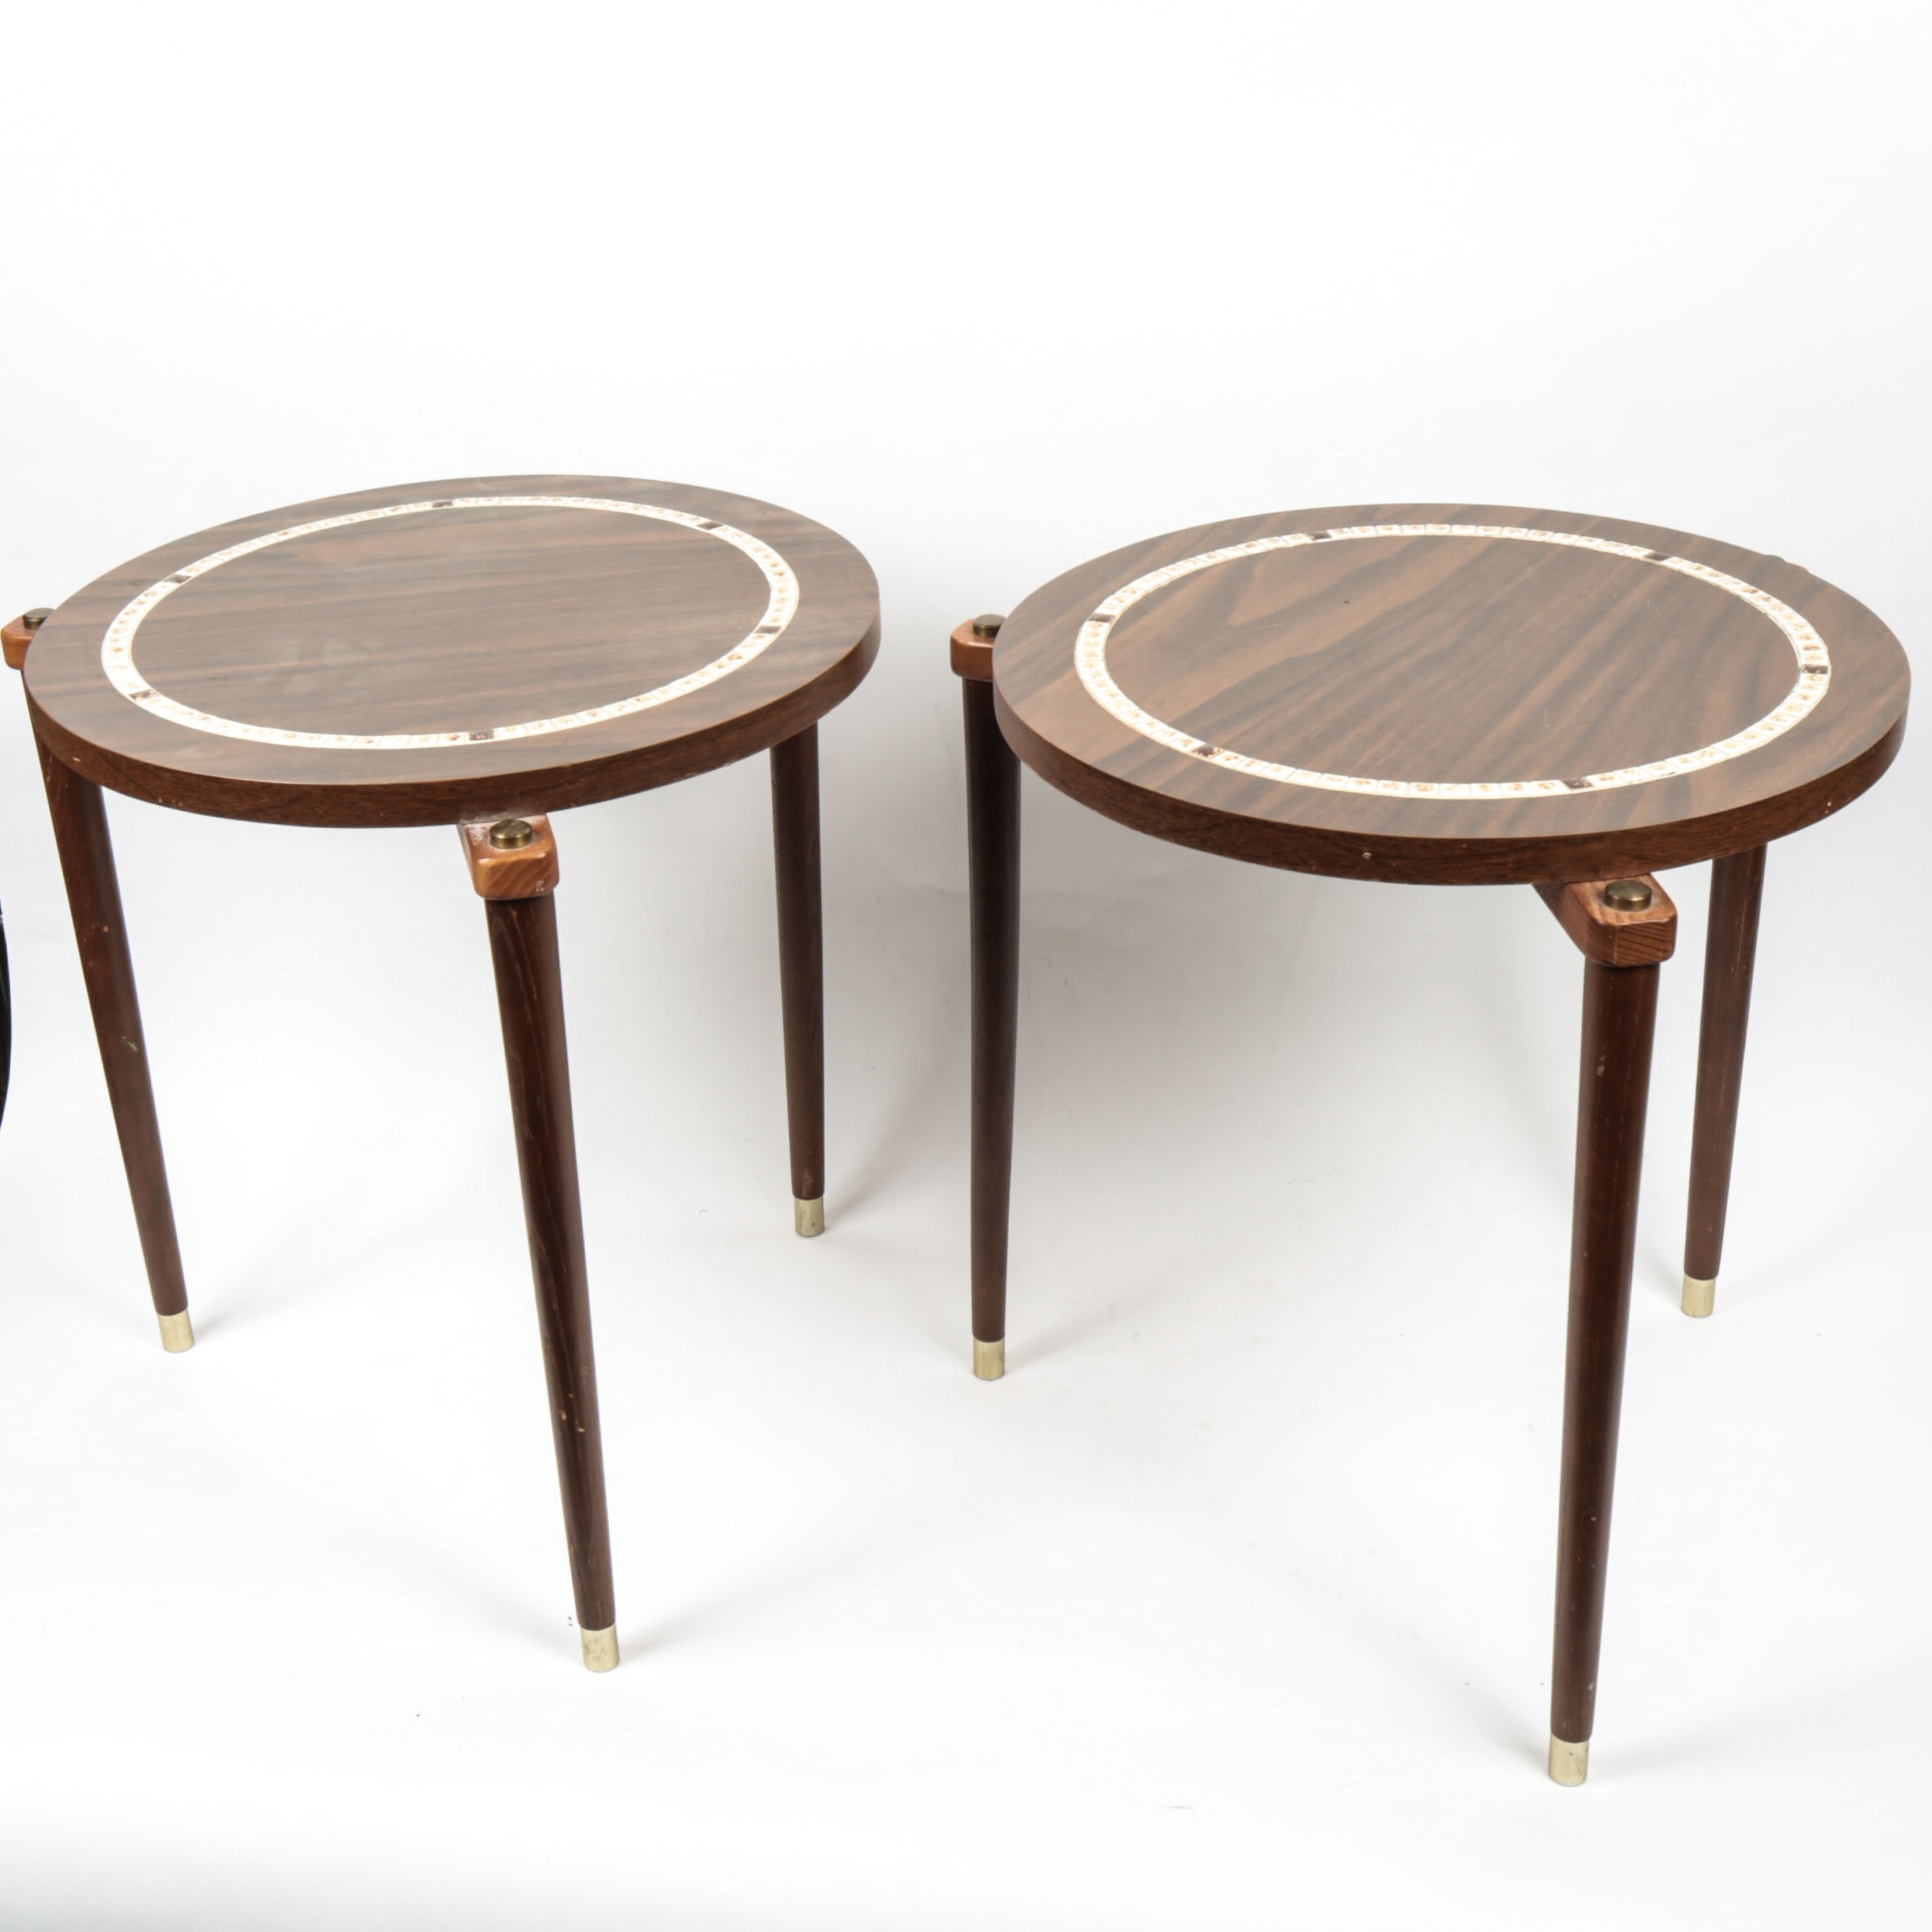 Pair of Mid Century Modern End Tables